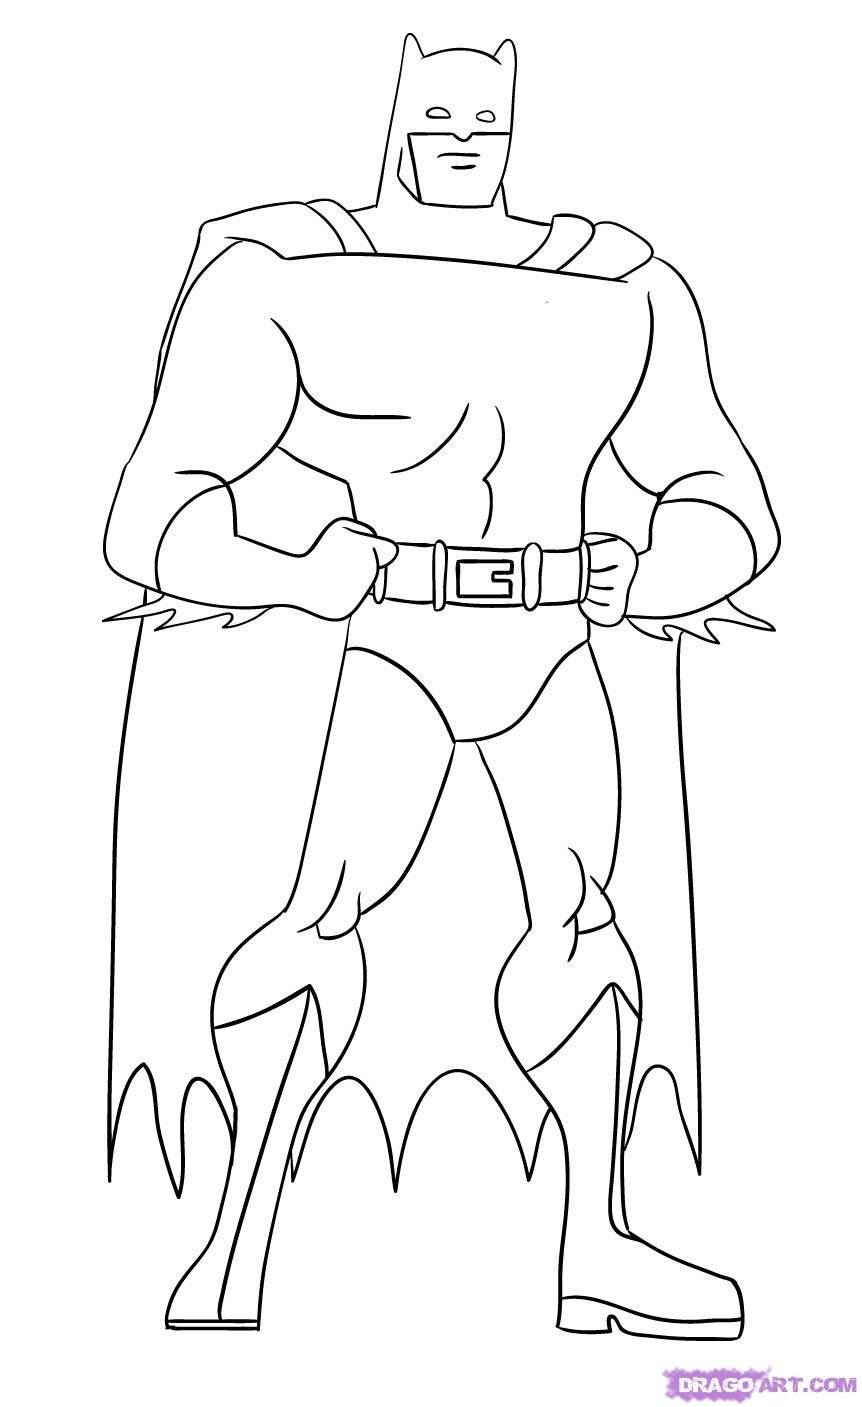 Batman Pictures to Draw How to Draw Batman Step by Step Dc Ics Ics Free